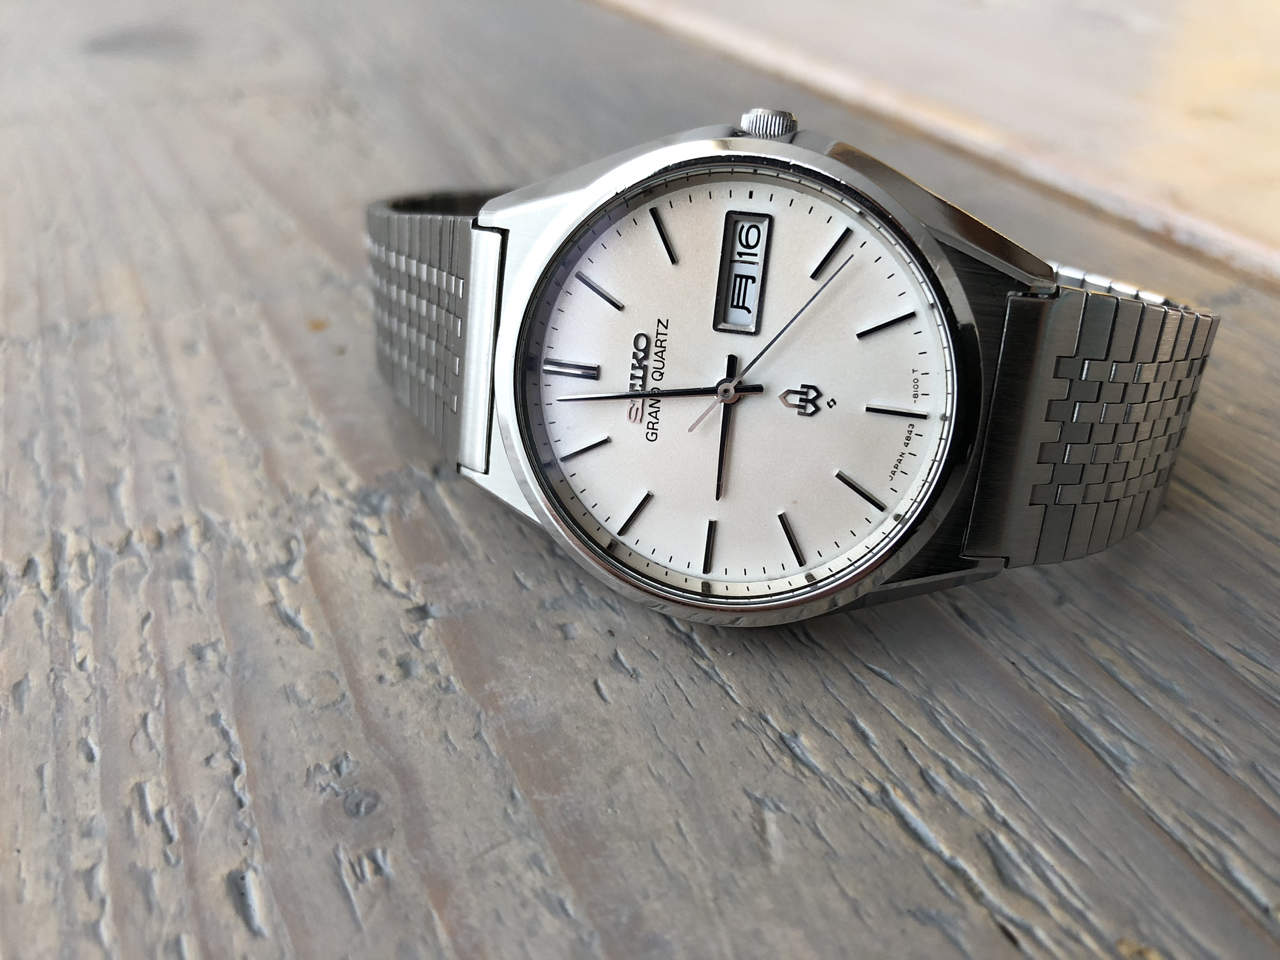 Seiko Grand Quartz 4843-8110 (sold)